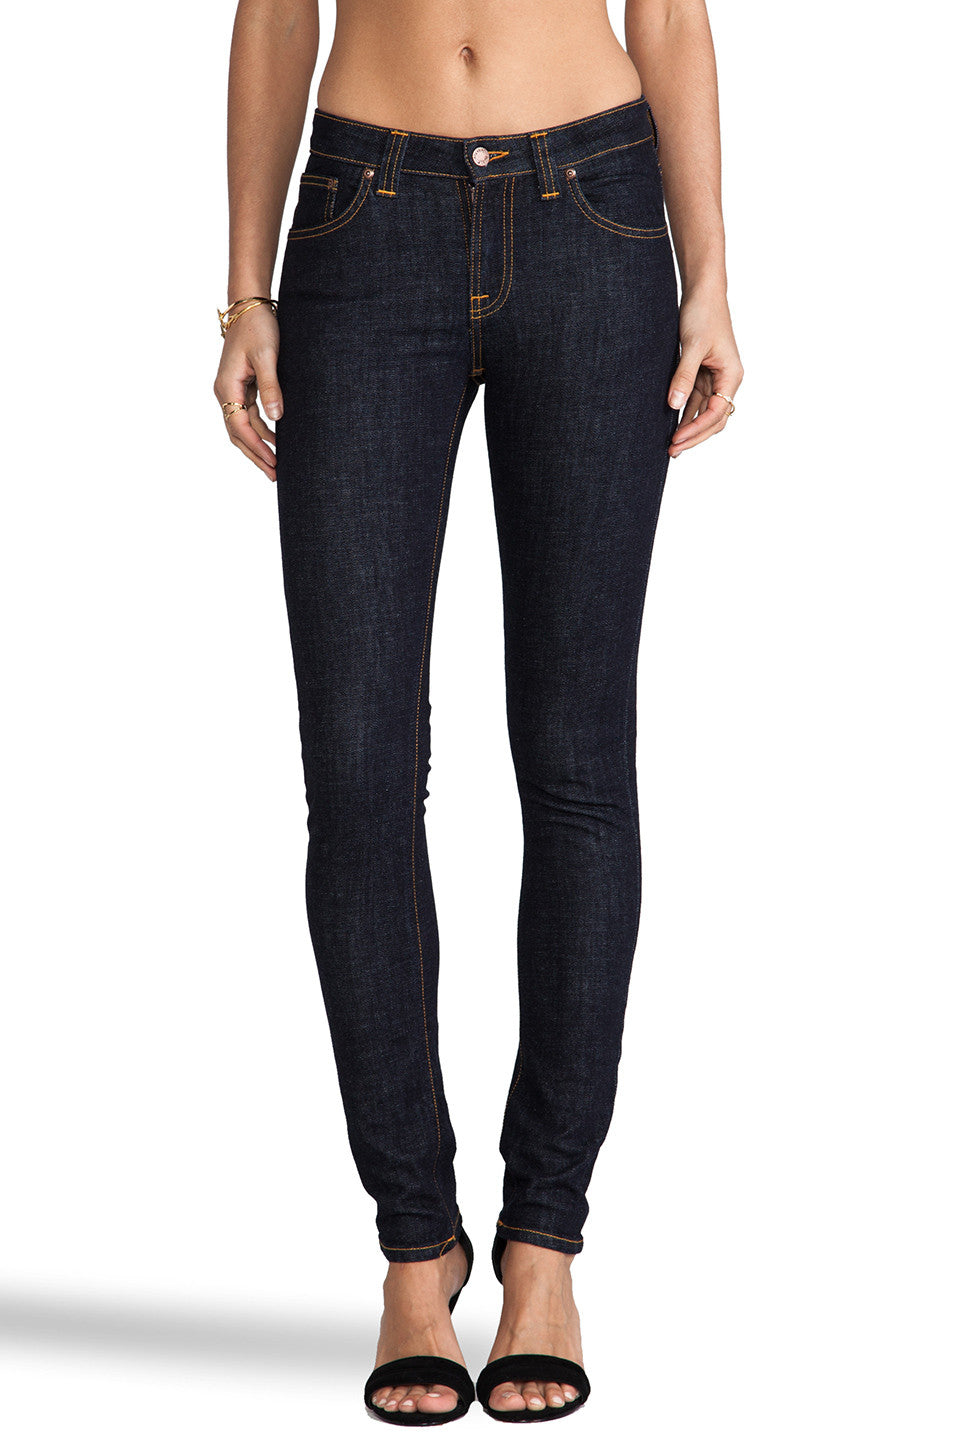 Nudie Jeans Co Tight Long John Jeans - Joyce's Closet  - 1